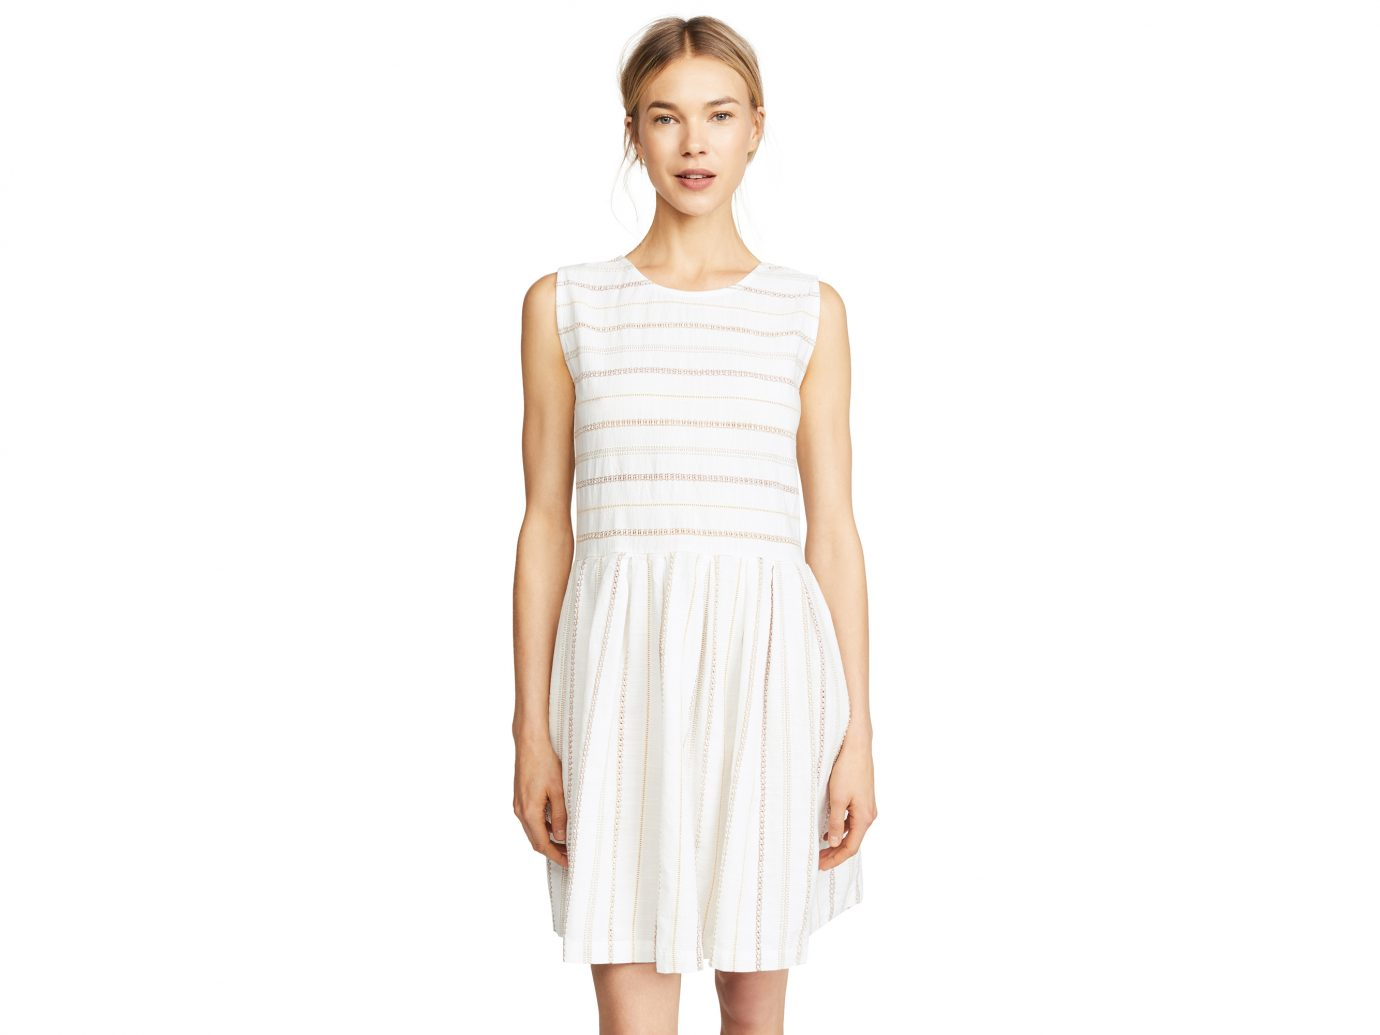 ace & jig Daisy white dress for summer